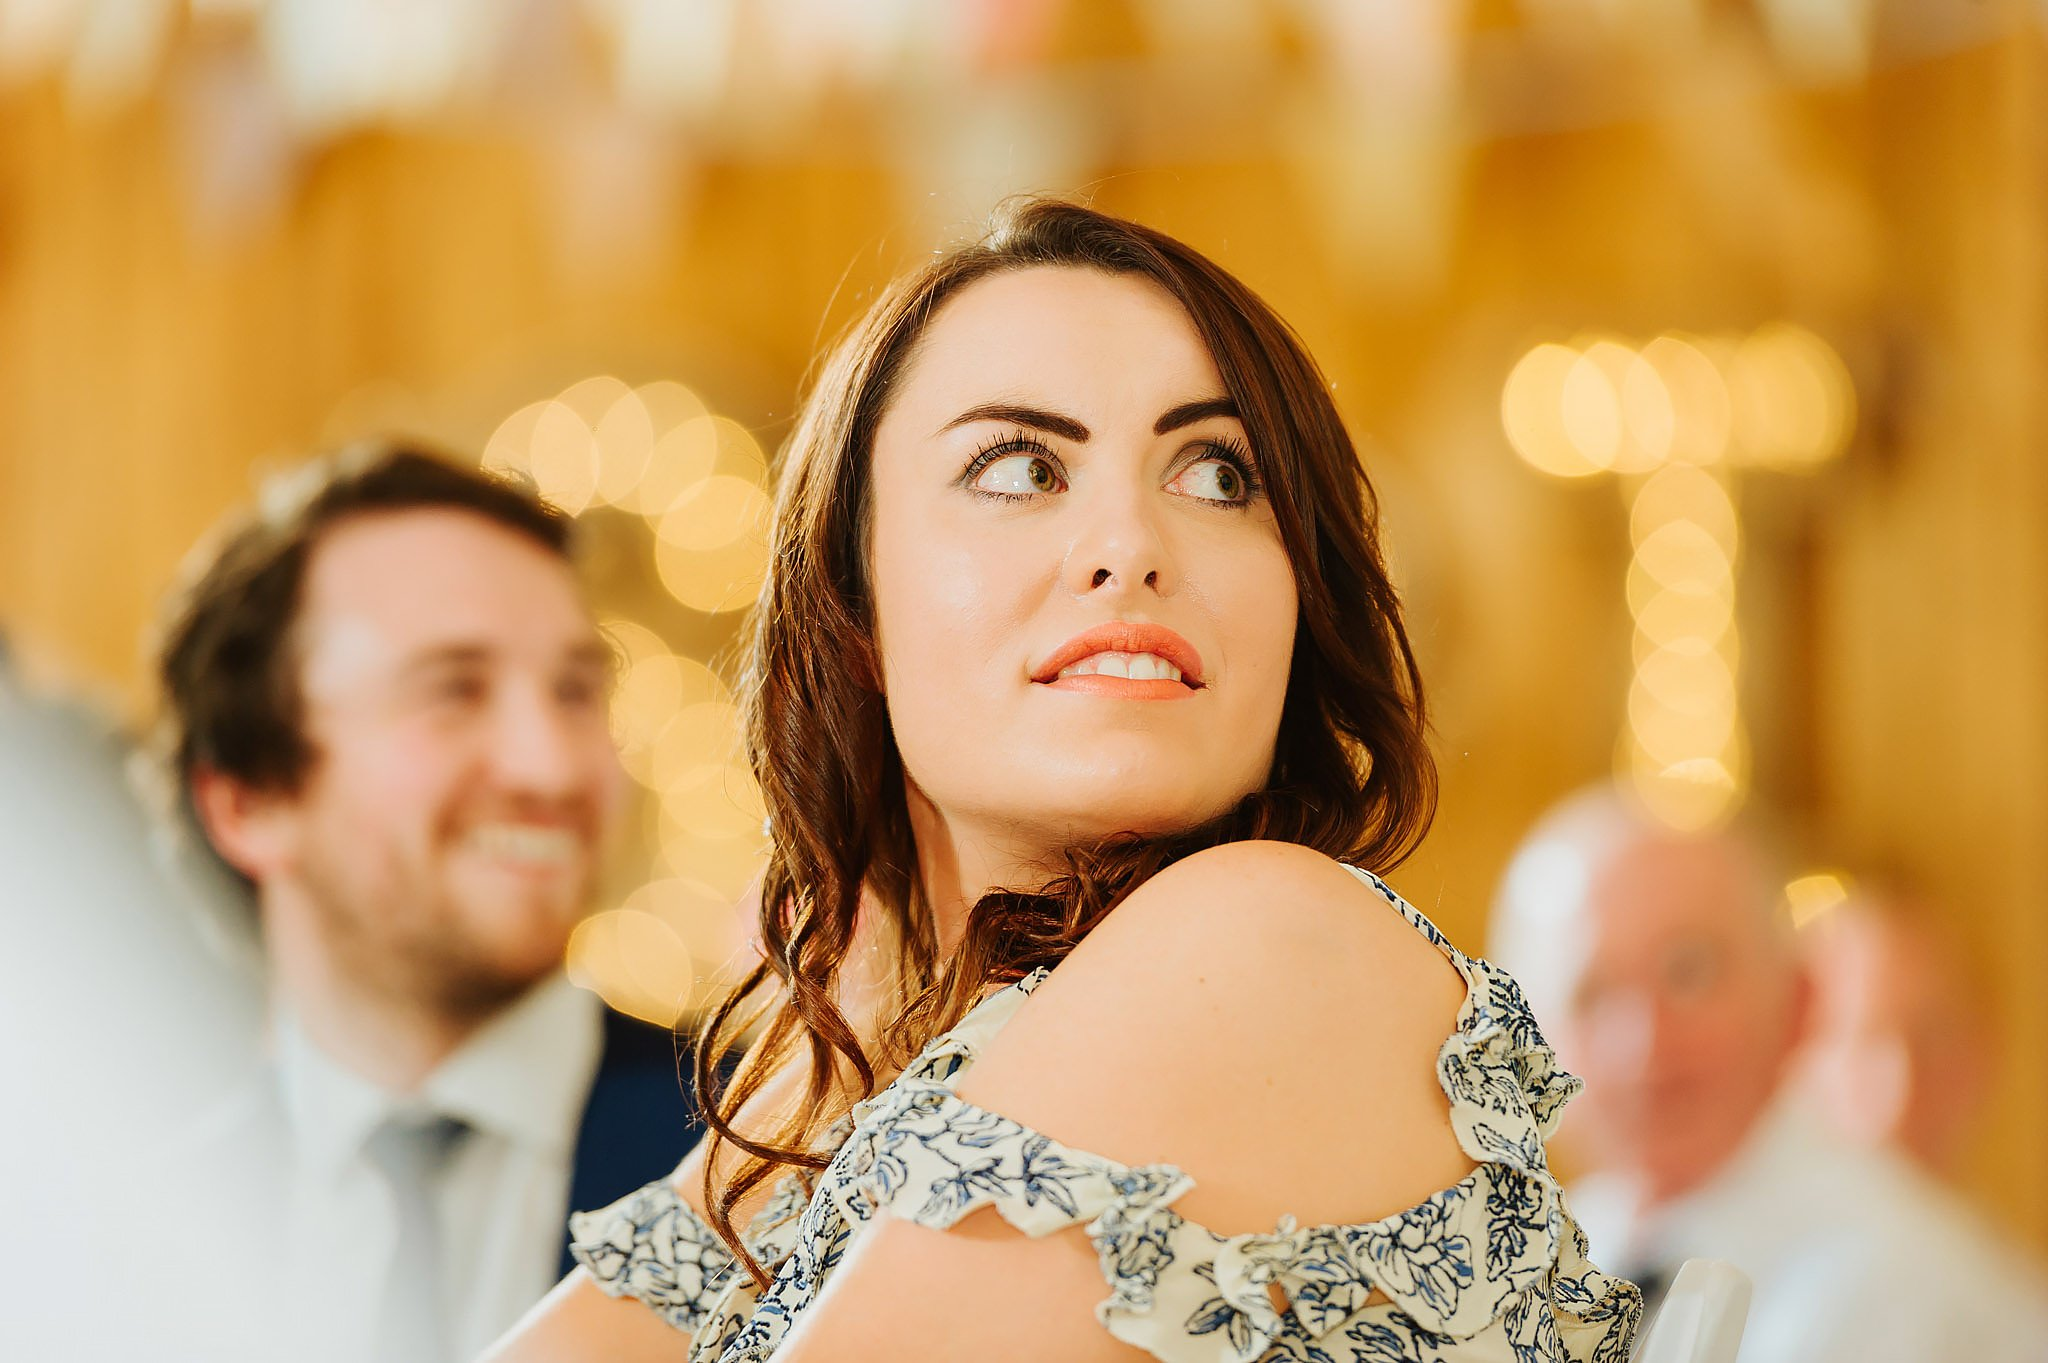 Wedding photography at Hellens Manor in Herefordshire, West Midlands | Shelley + Ian 77